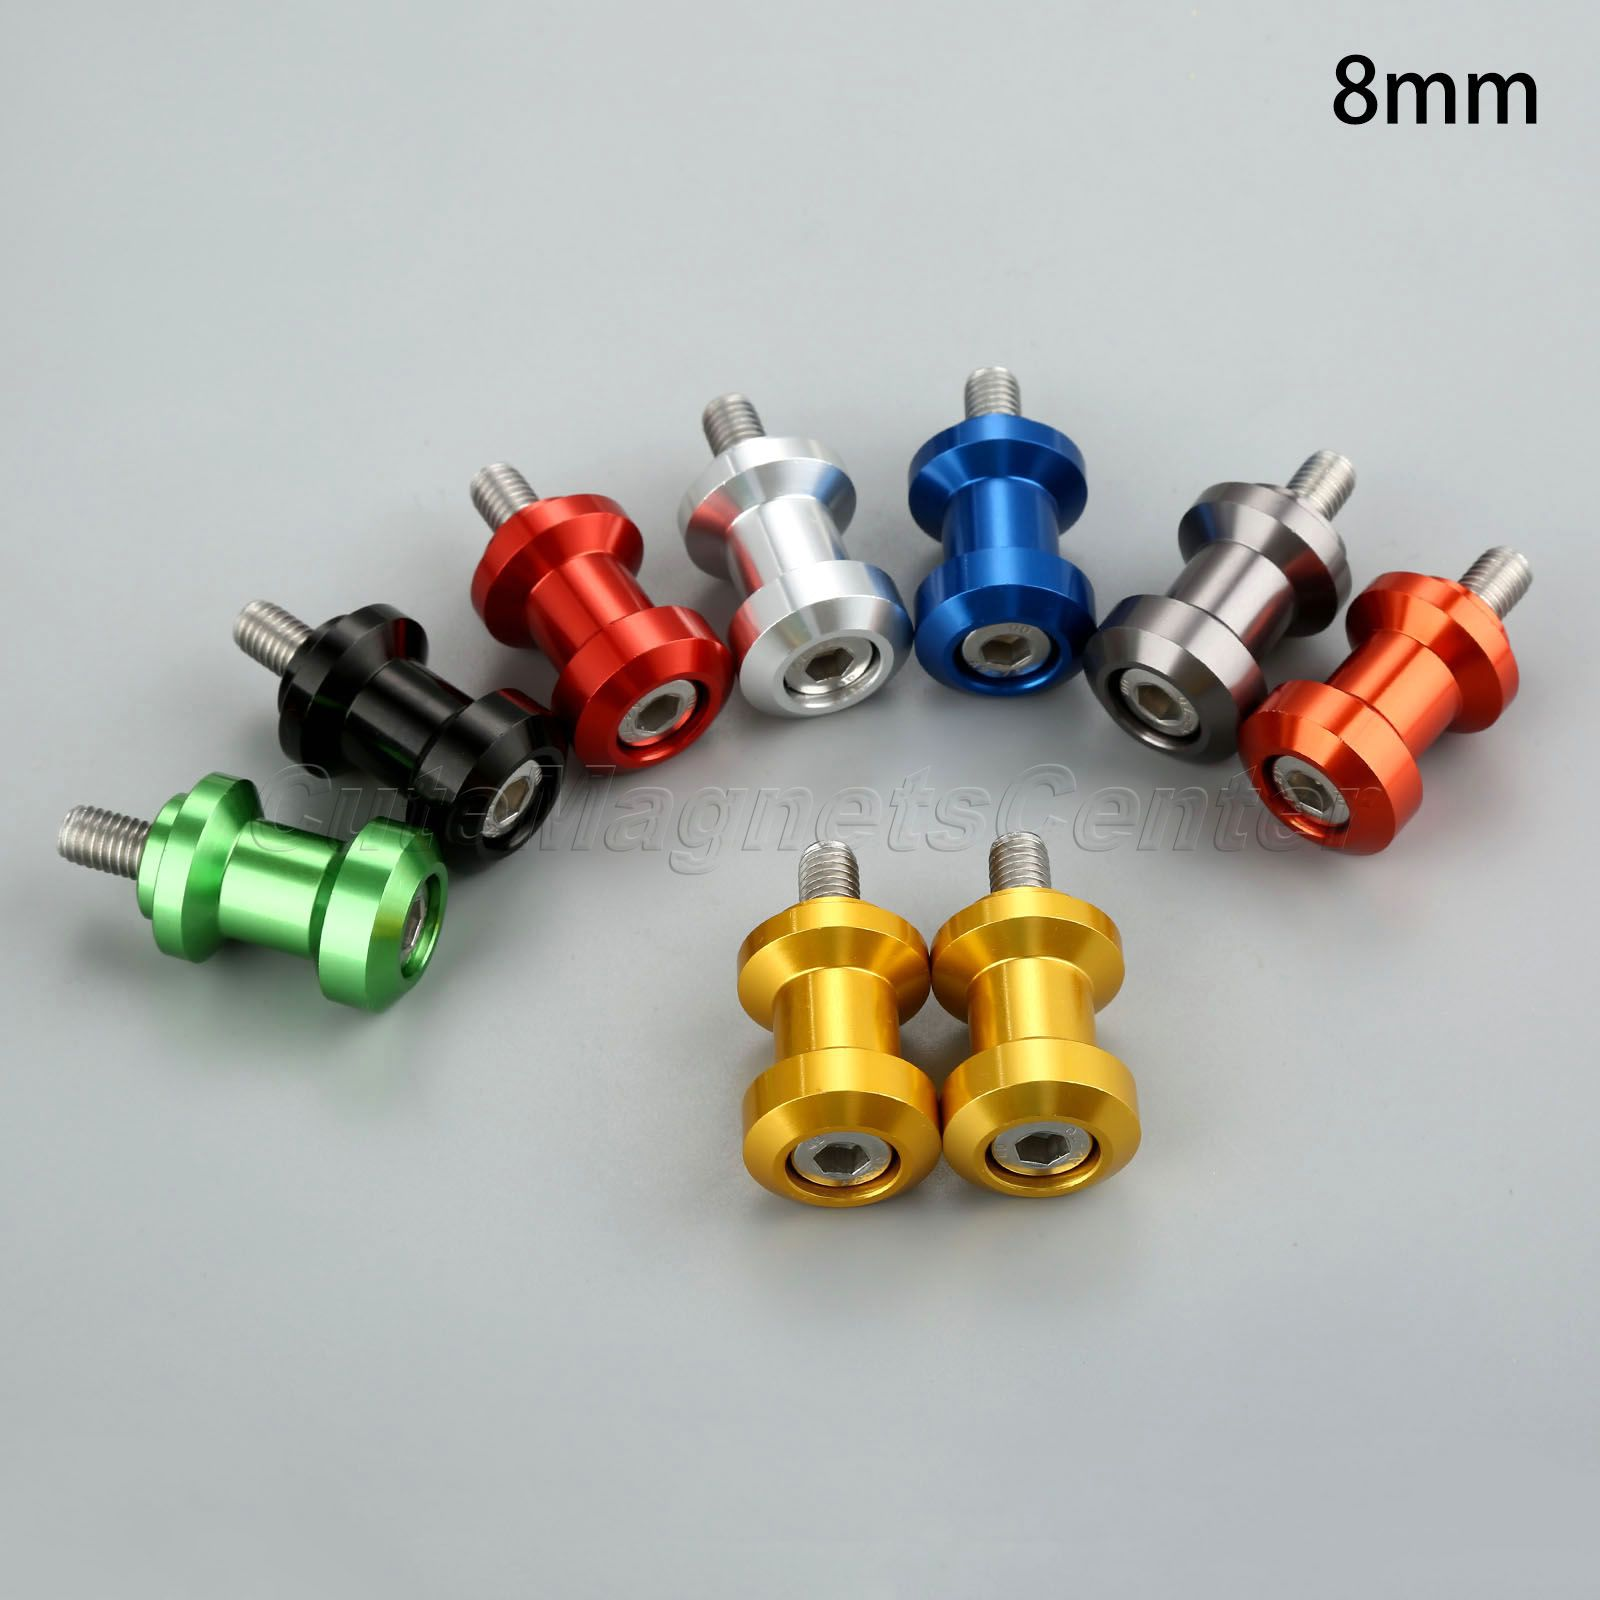 цены mtsooning 2pcs 8mm Rear Motorcycle Swingarm Spool Slider Bobbins CNC Aluminum For Honda Suzuki Ducati Kawasaki Motorcycle Part